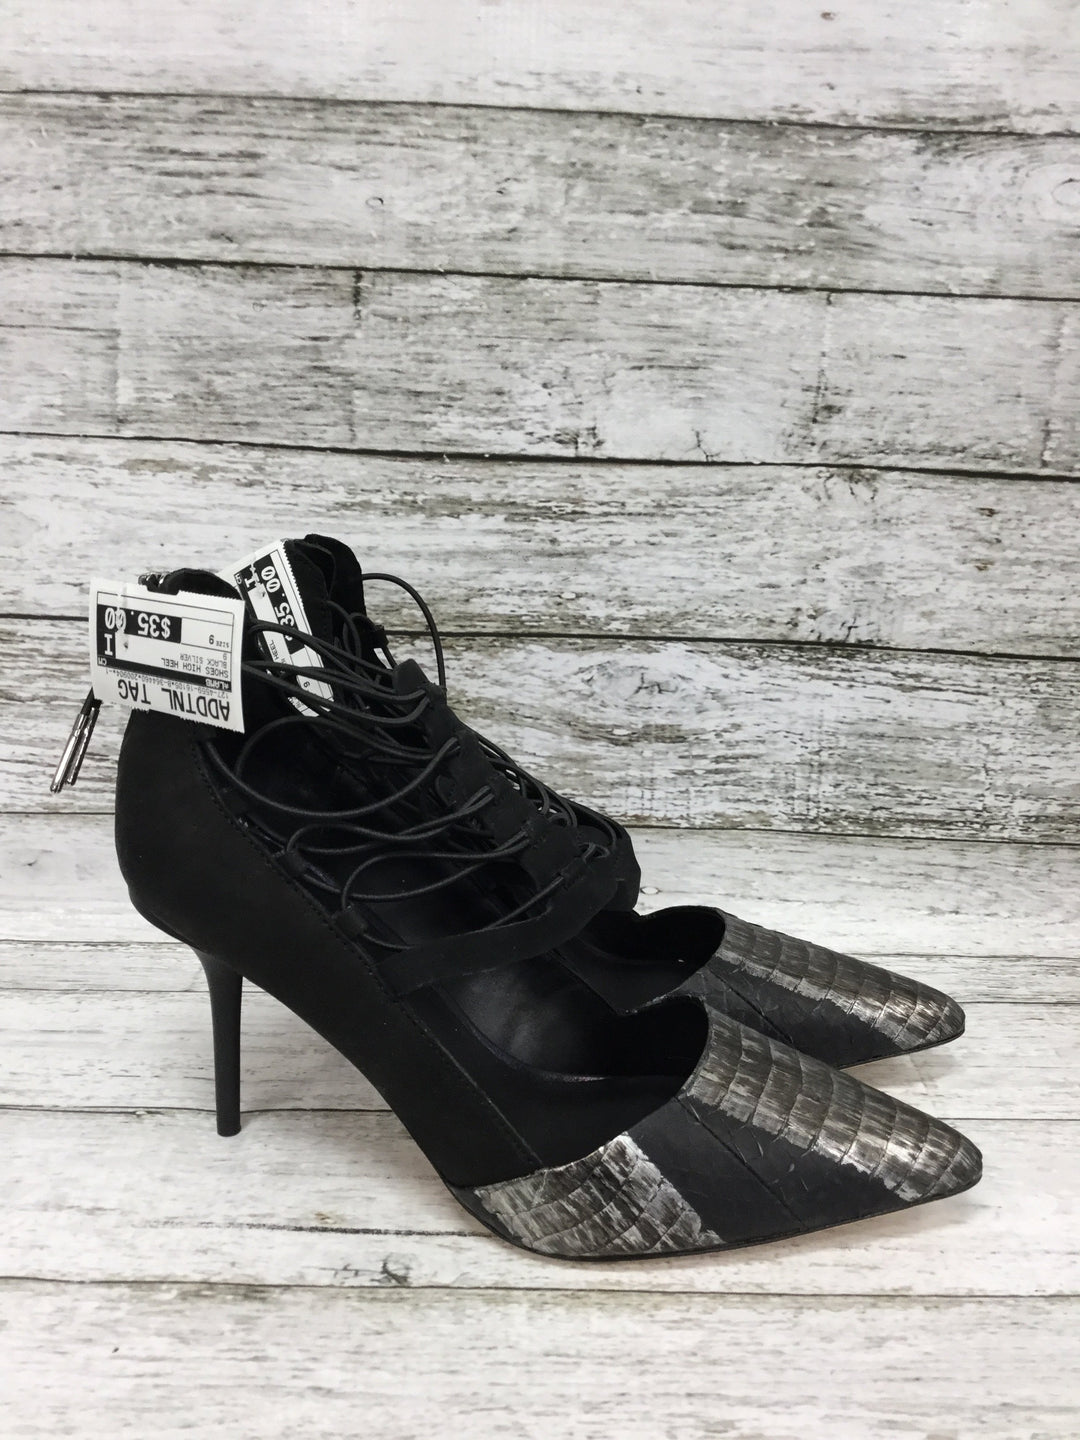 Photo #1 - brand: lamb , style: shoes high heel , color: black silver , size: 9 , sku: 127-4559-16105, , heels by lamb in good condition. zipper in back.